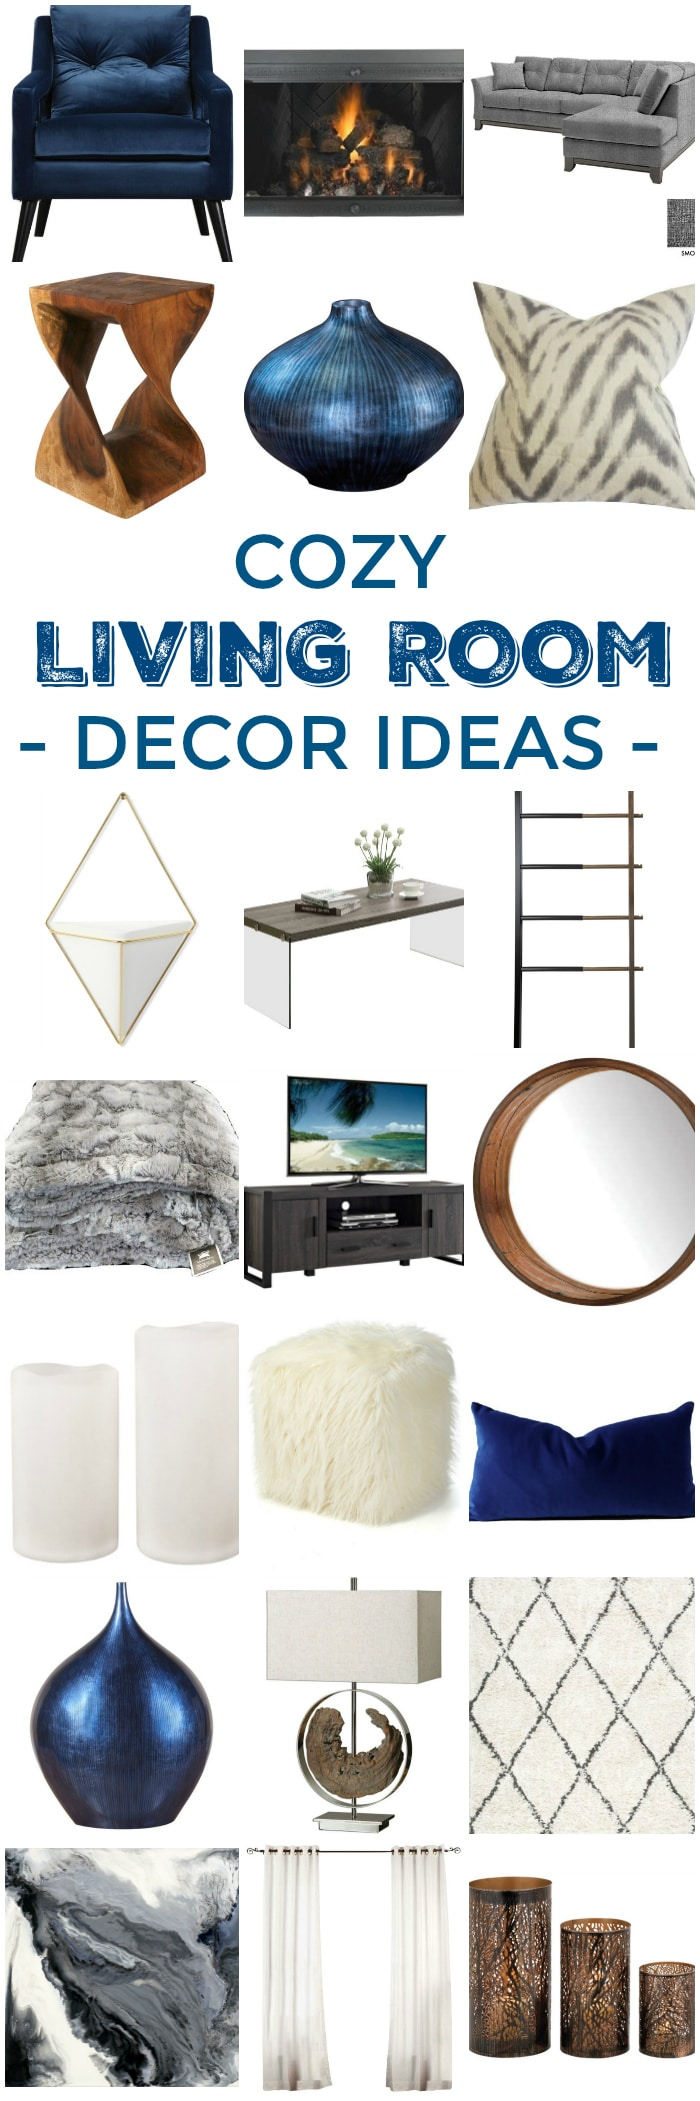 Cozy Living Room: 6 Decor Tips: How To Create A Cozy Living Room